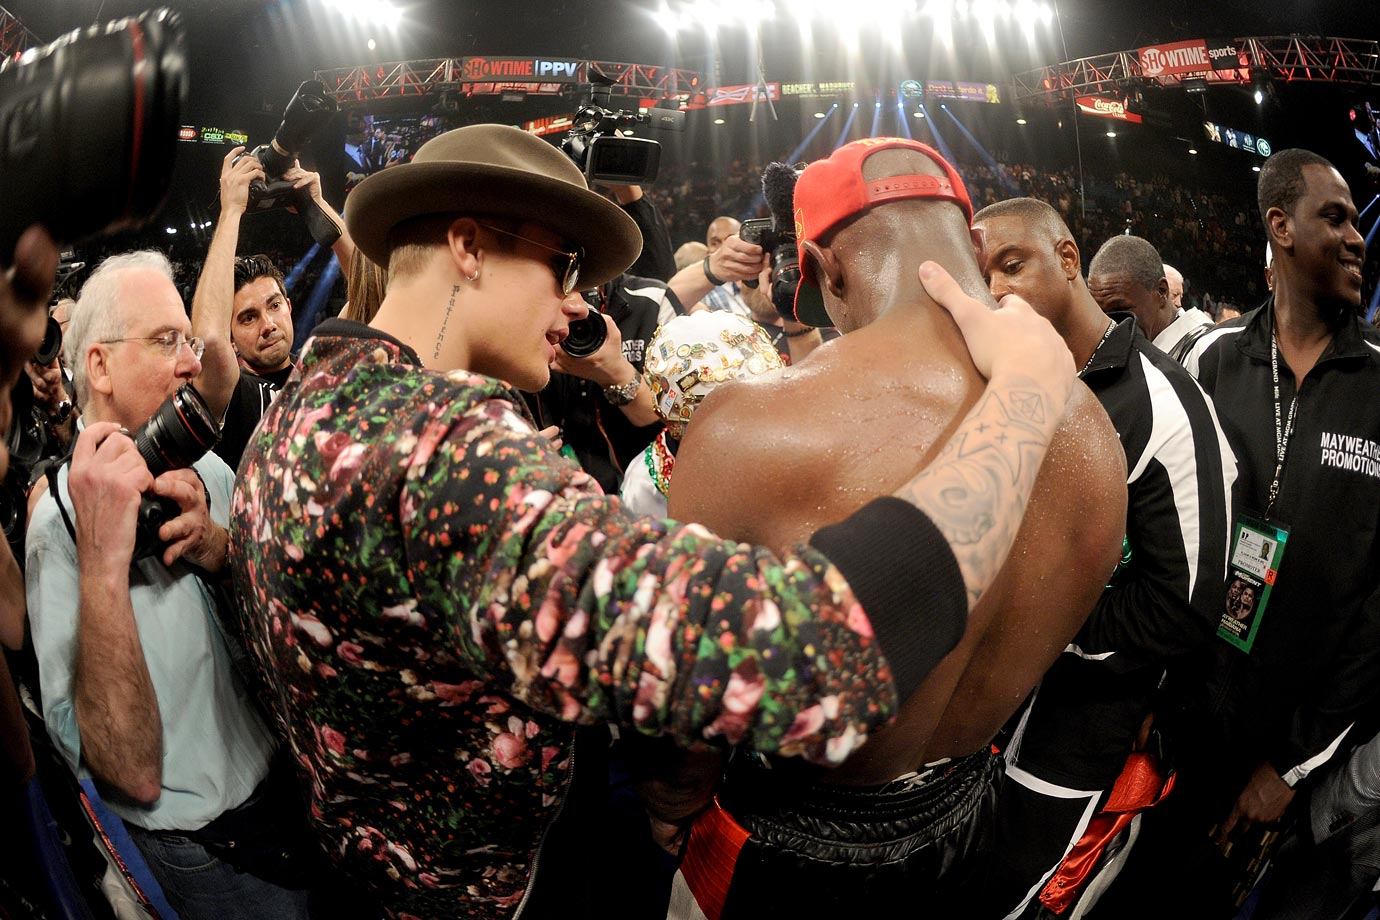 Justin Bieber and Floyd Mayweather Jr. celebrate after Mayweather defeated Marcos Maidana by majority decision in their WBC/WBA welterweight unification fight on May 3, 2014 at the MGM Grand Garden Arena in Las Vegas.